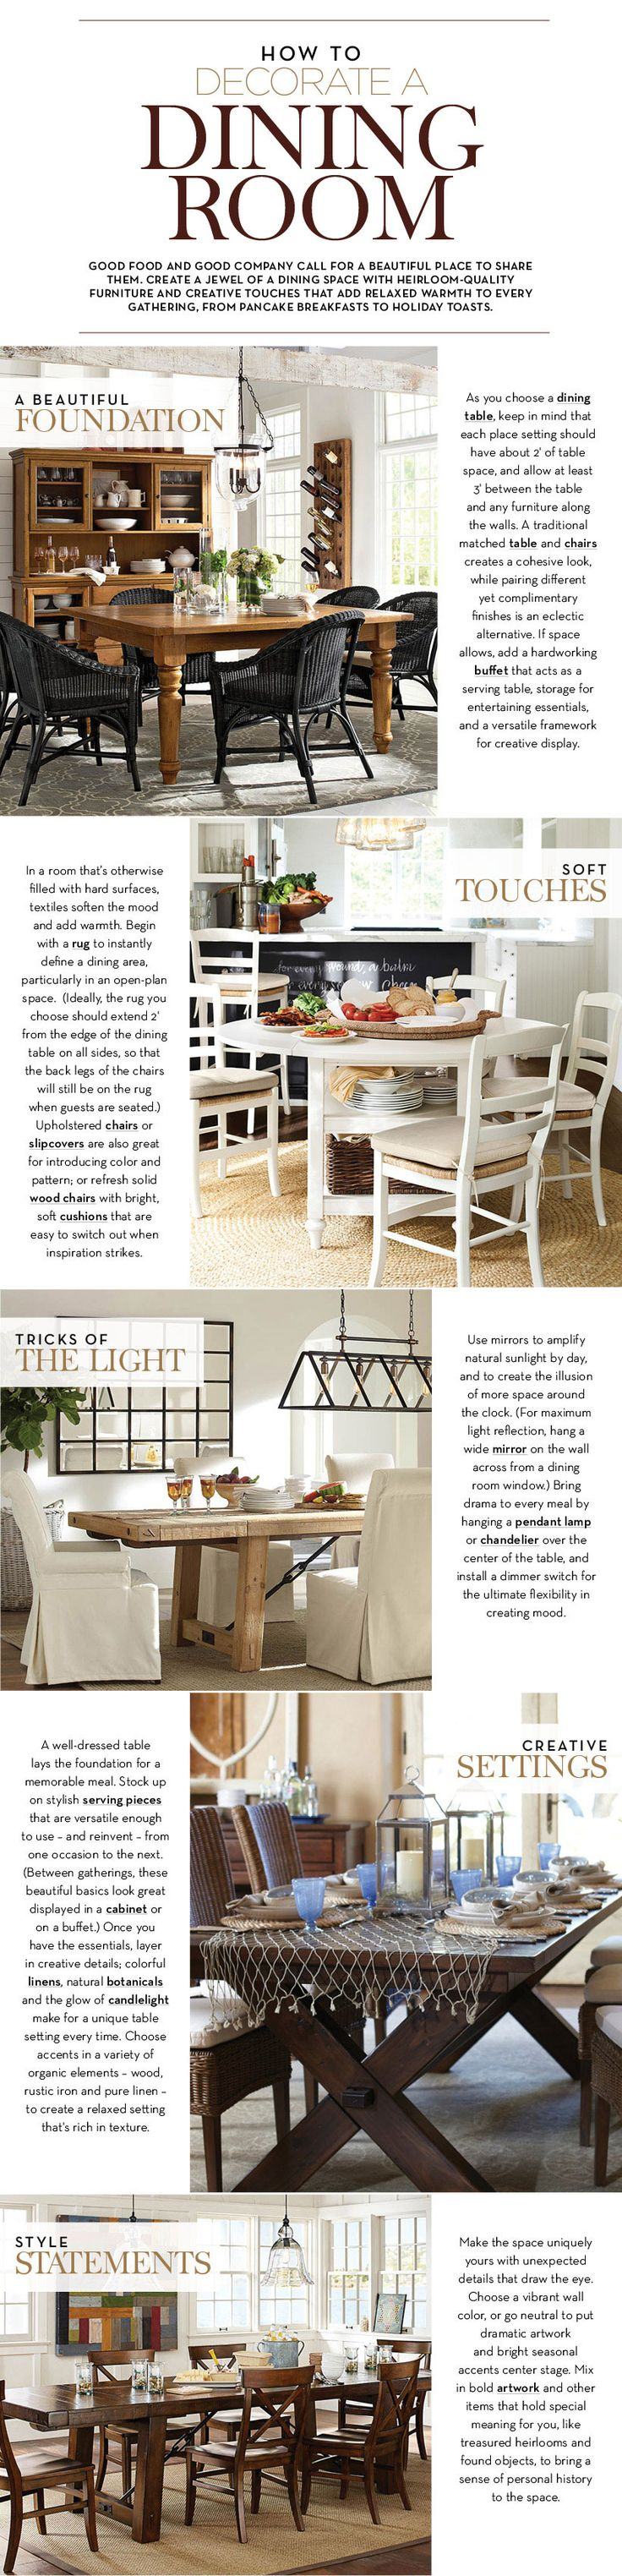 79 best Dining rooms images on Pinterest | Dining room, Dining rooms ...